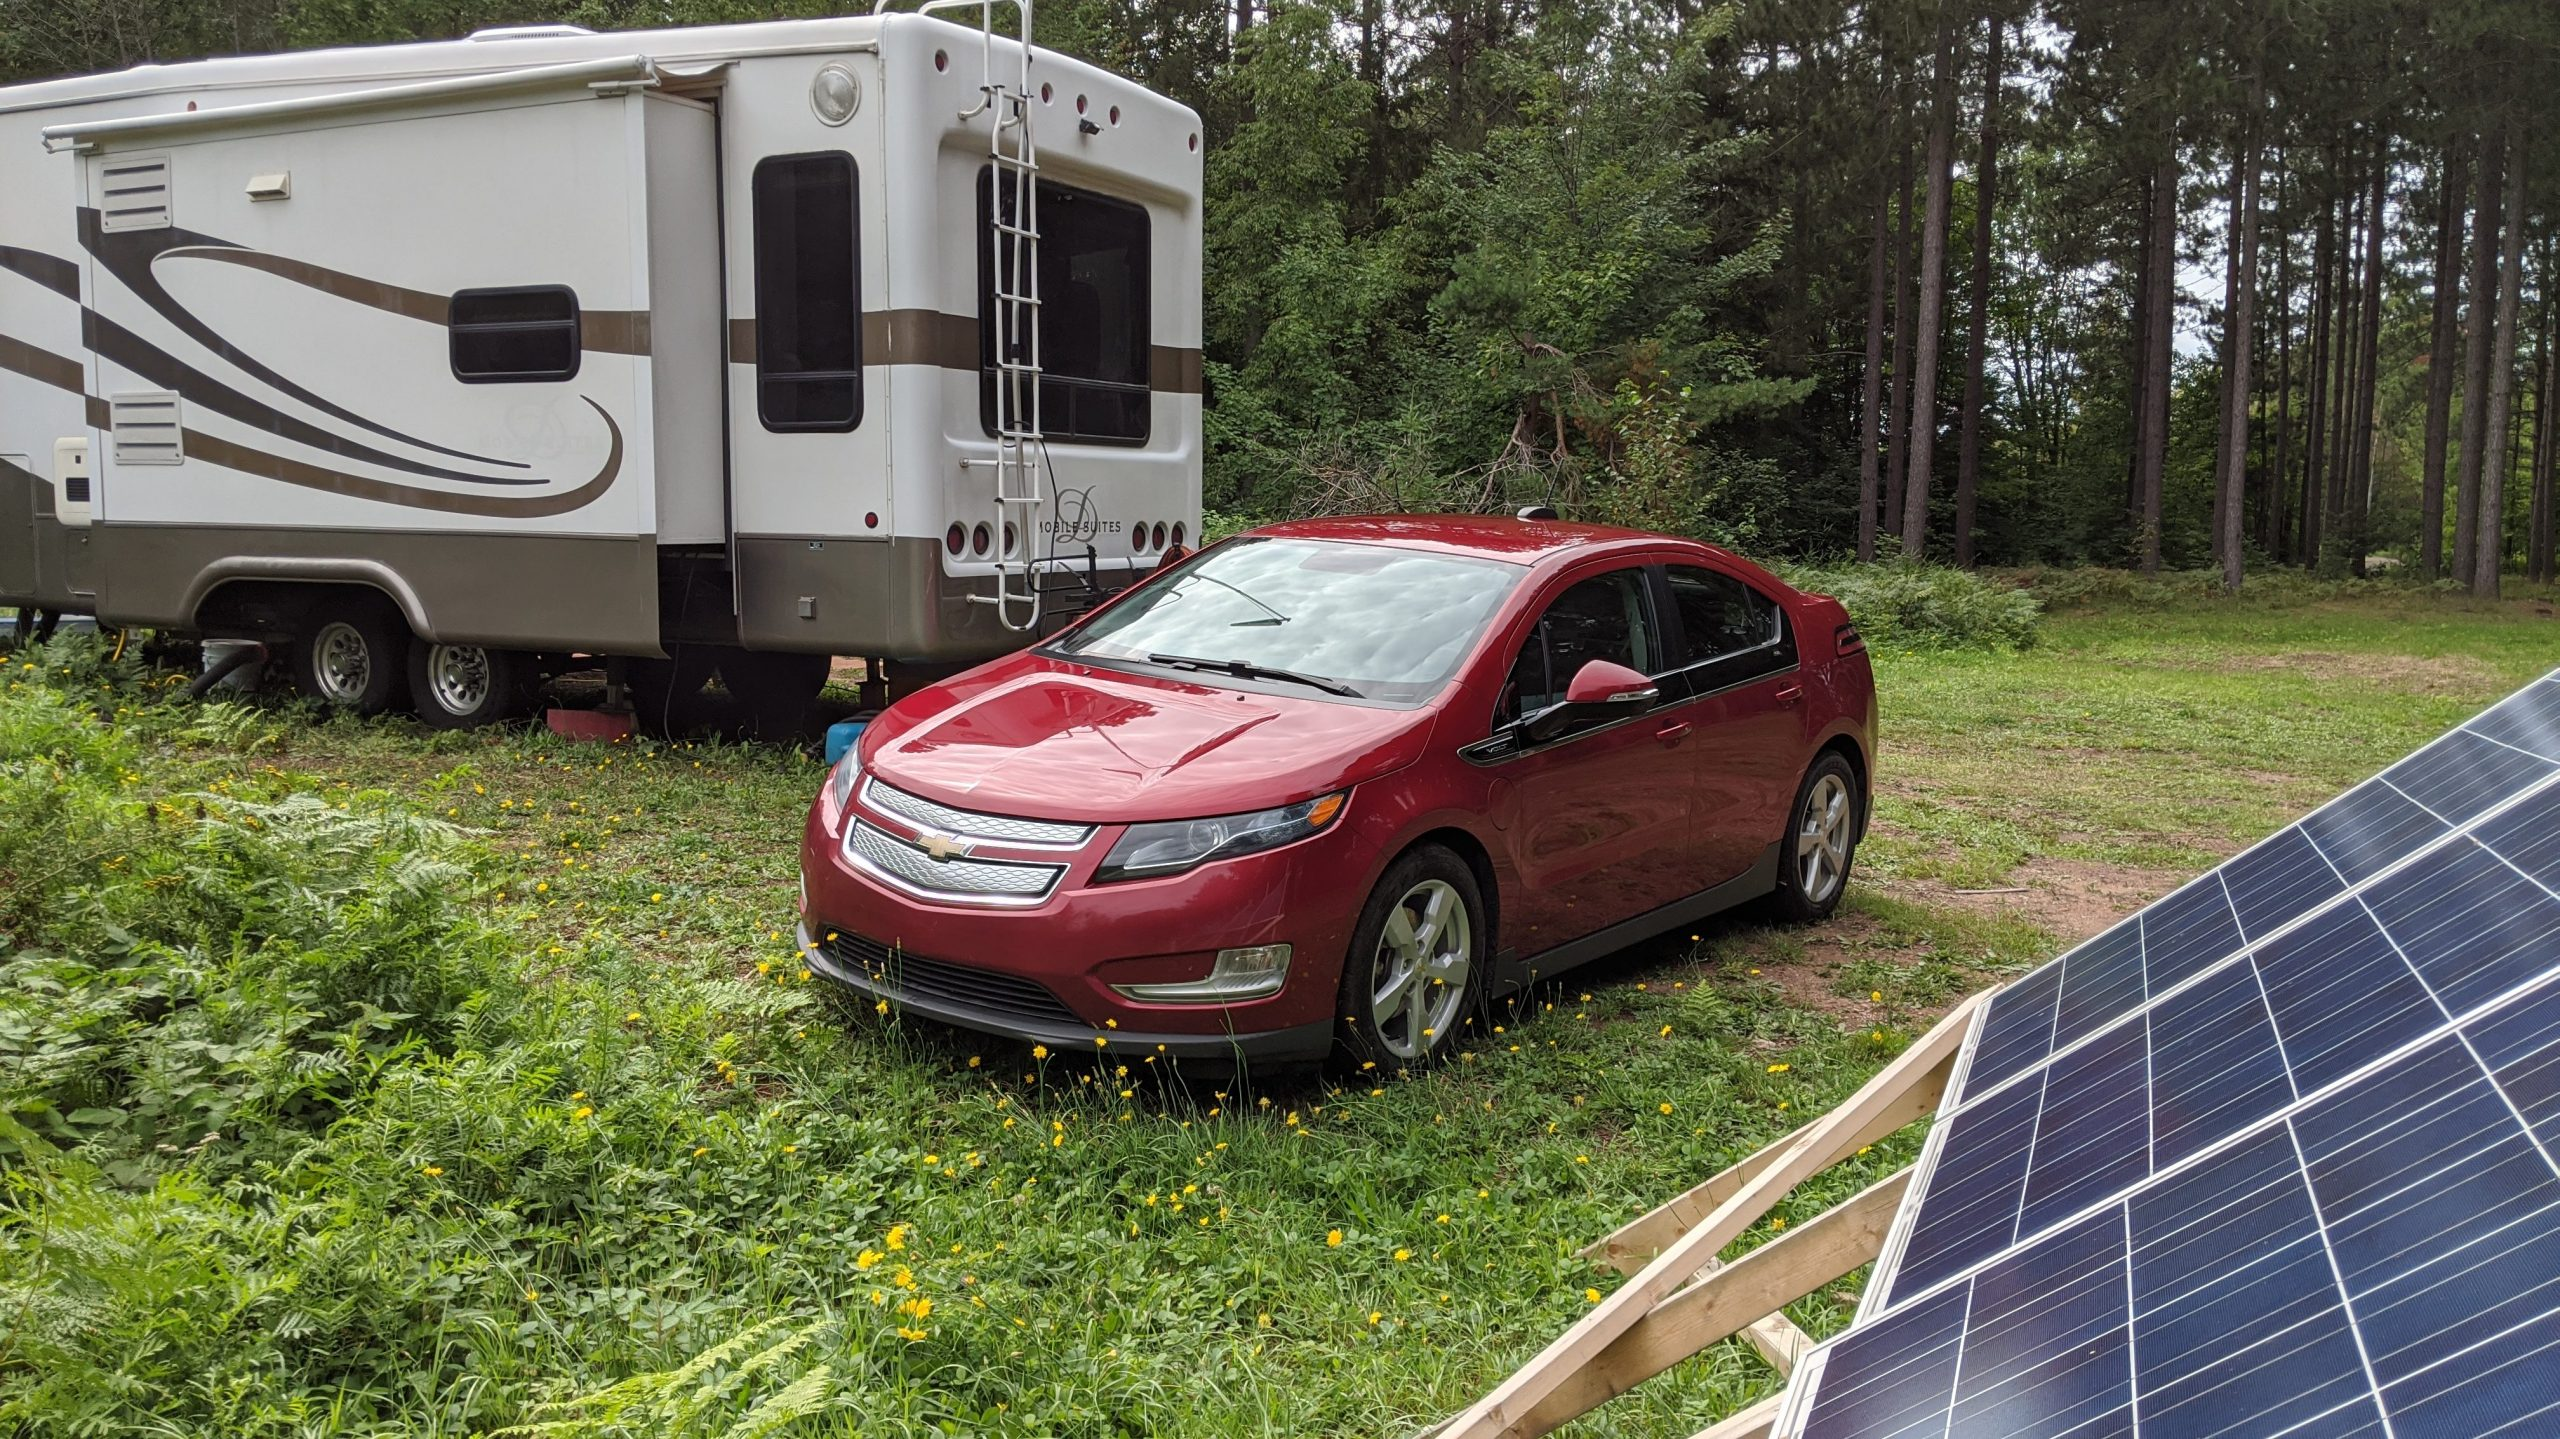 solar-powered car charged from rv